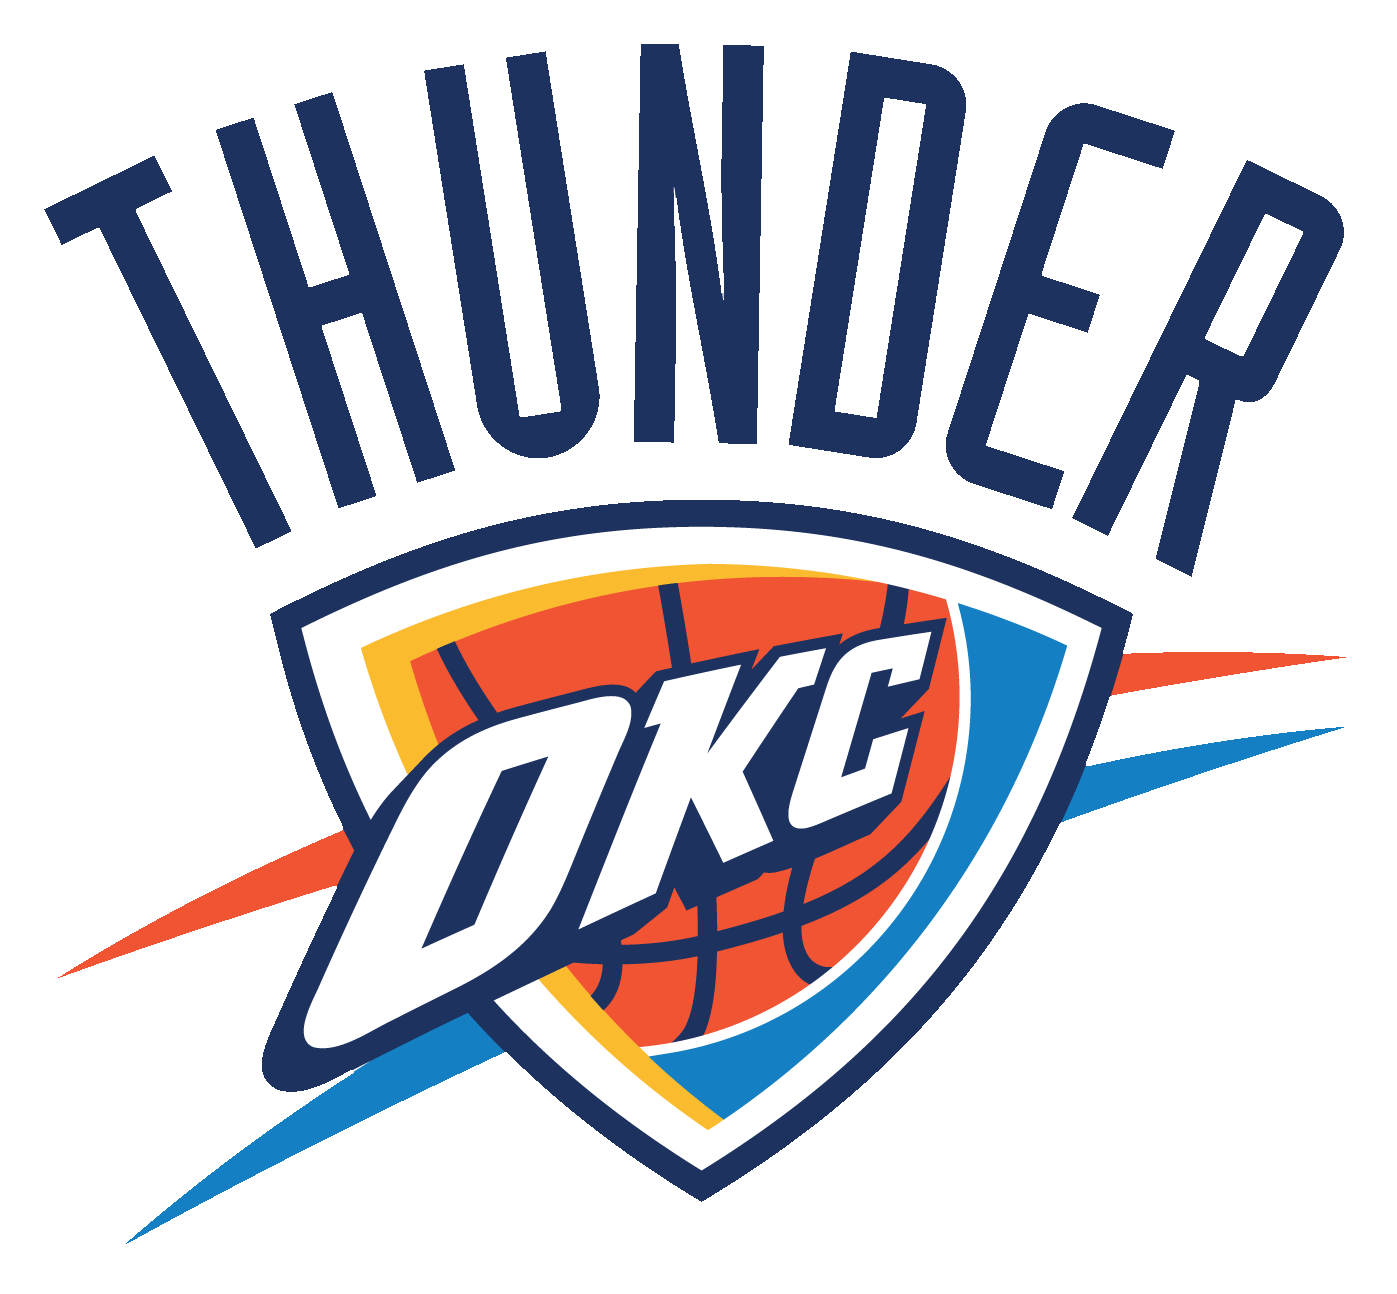 Free basketball clipart image black and white stock Free Thunder Basketball Cliparts, Download Free Clip Art, Free Clip ... image black and white stock